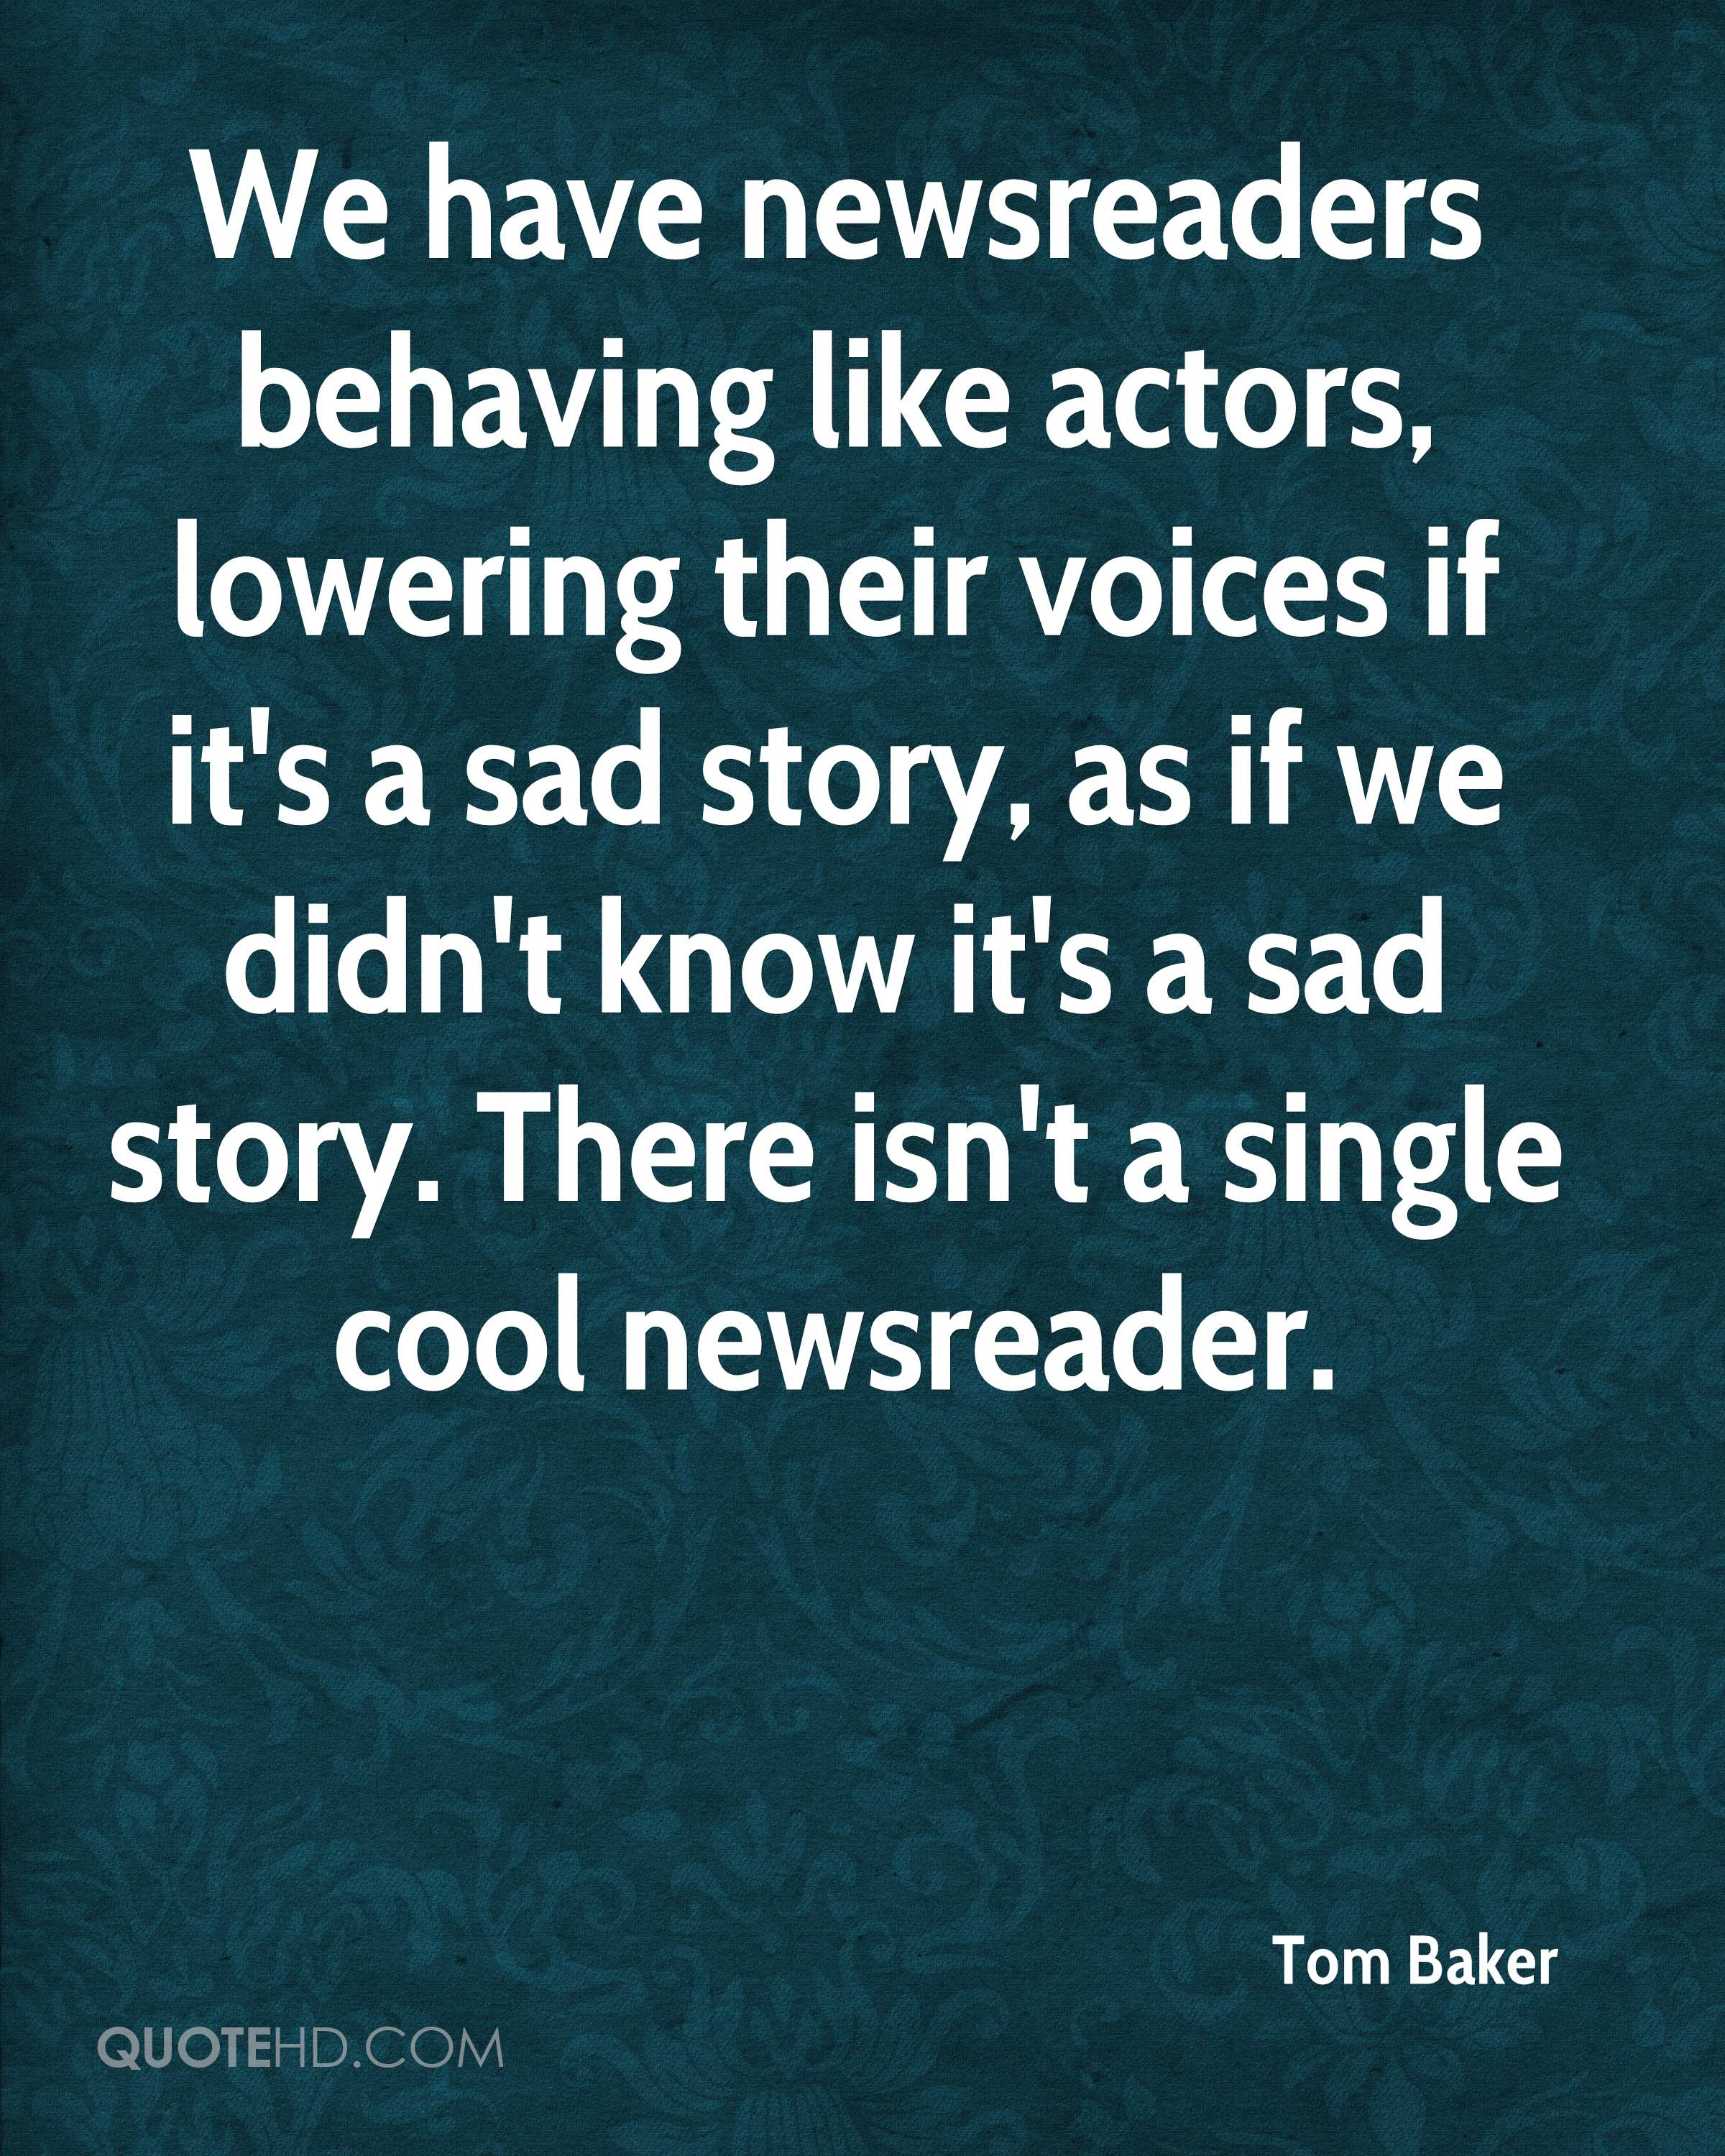 We have newsreaders behaving like actors, lowering their voices if it's a sad story, as if we didn't know it's a sad story. There isn't a single cool newsreader.